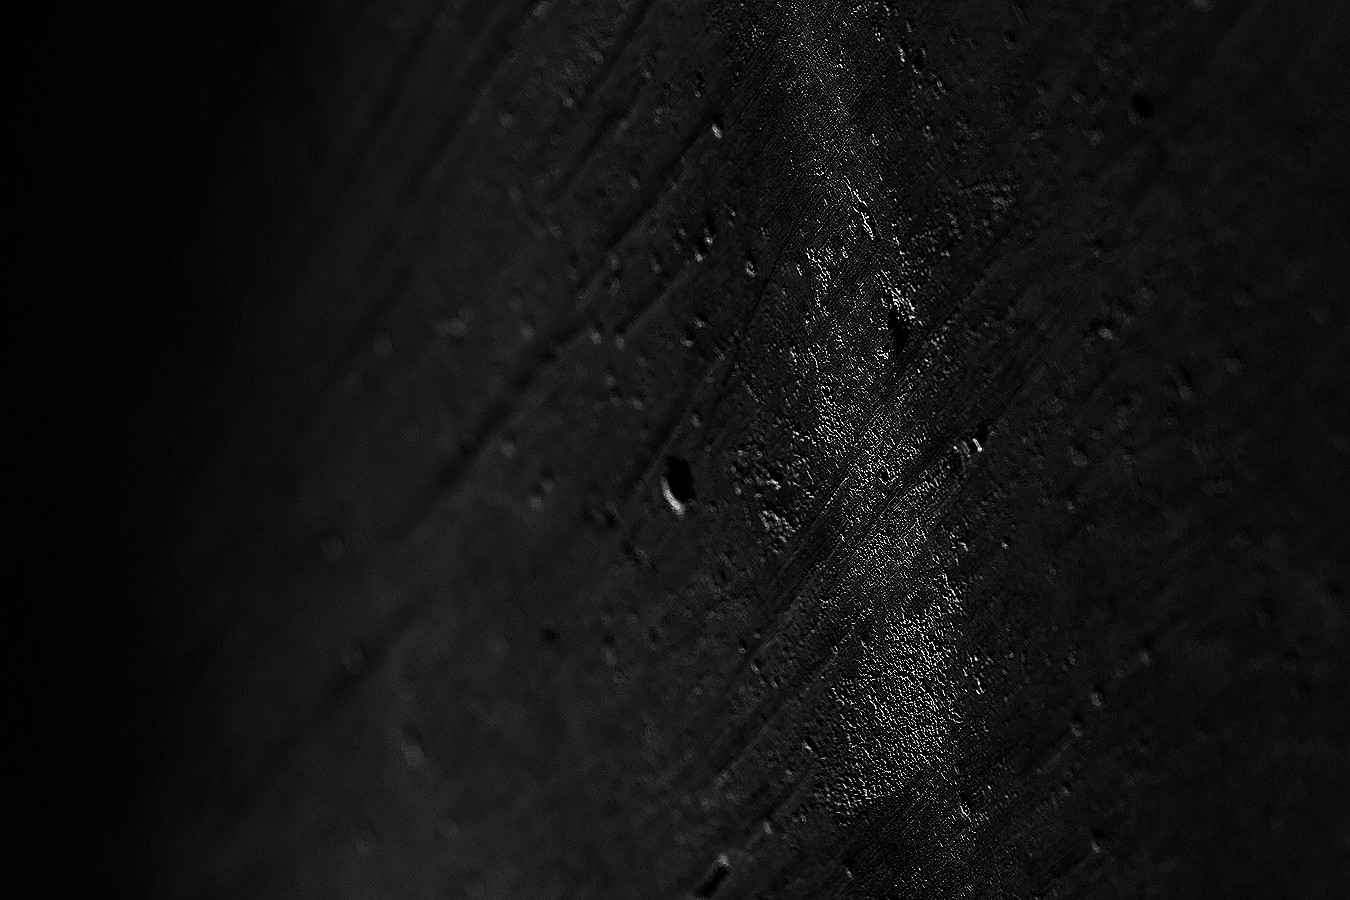 Linda_Ruan_black_and_white_photography_wall_texture_abstraction